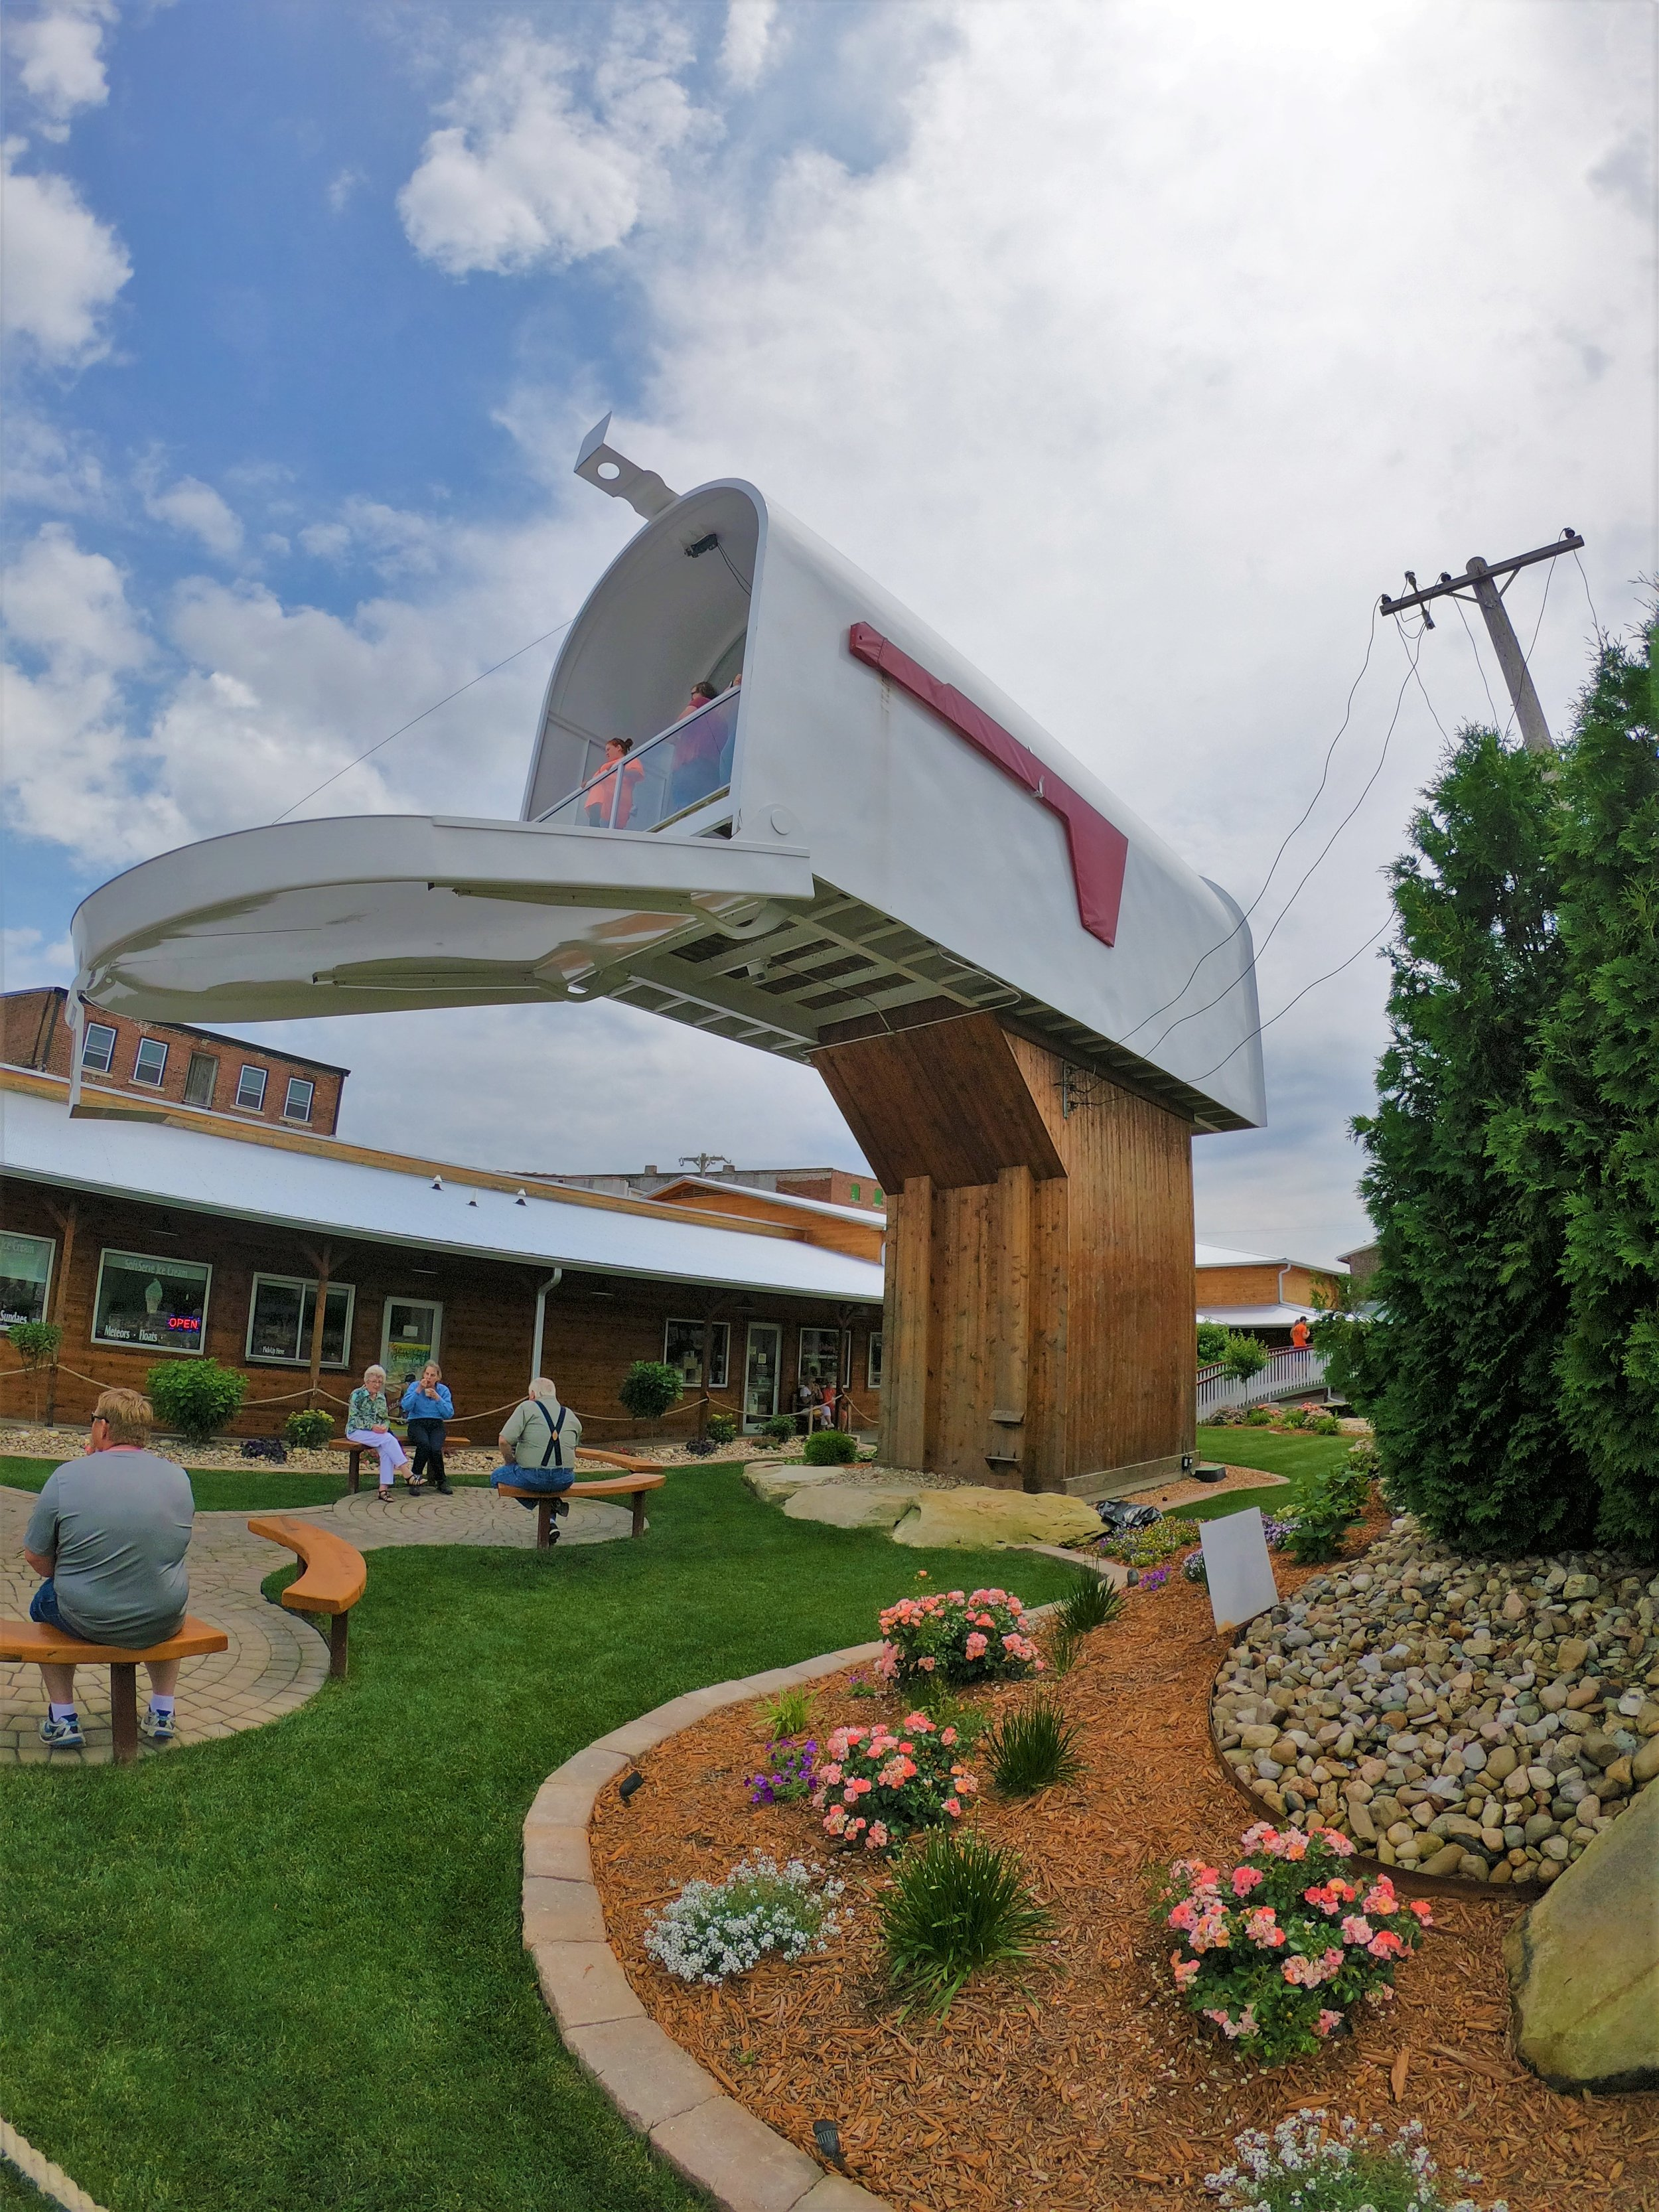 World's Largest Mailbox in Casey, Illinois